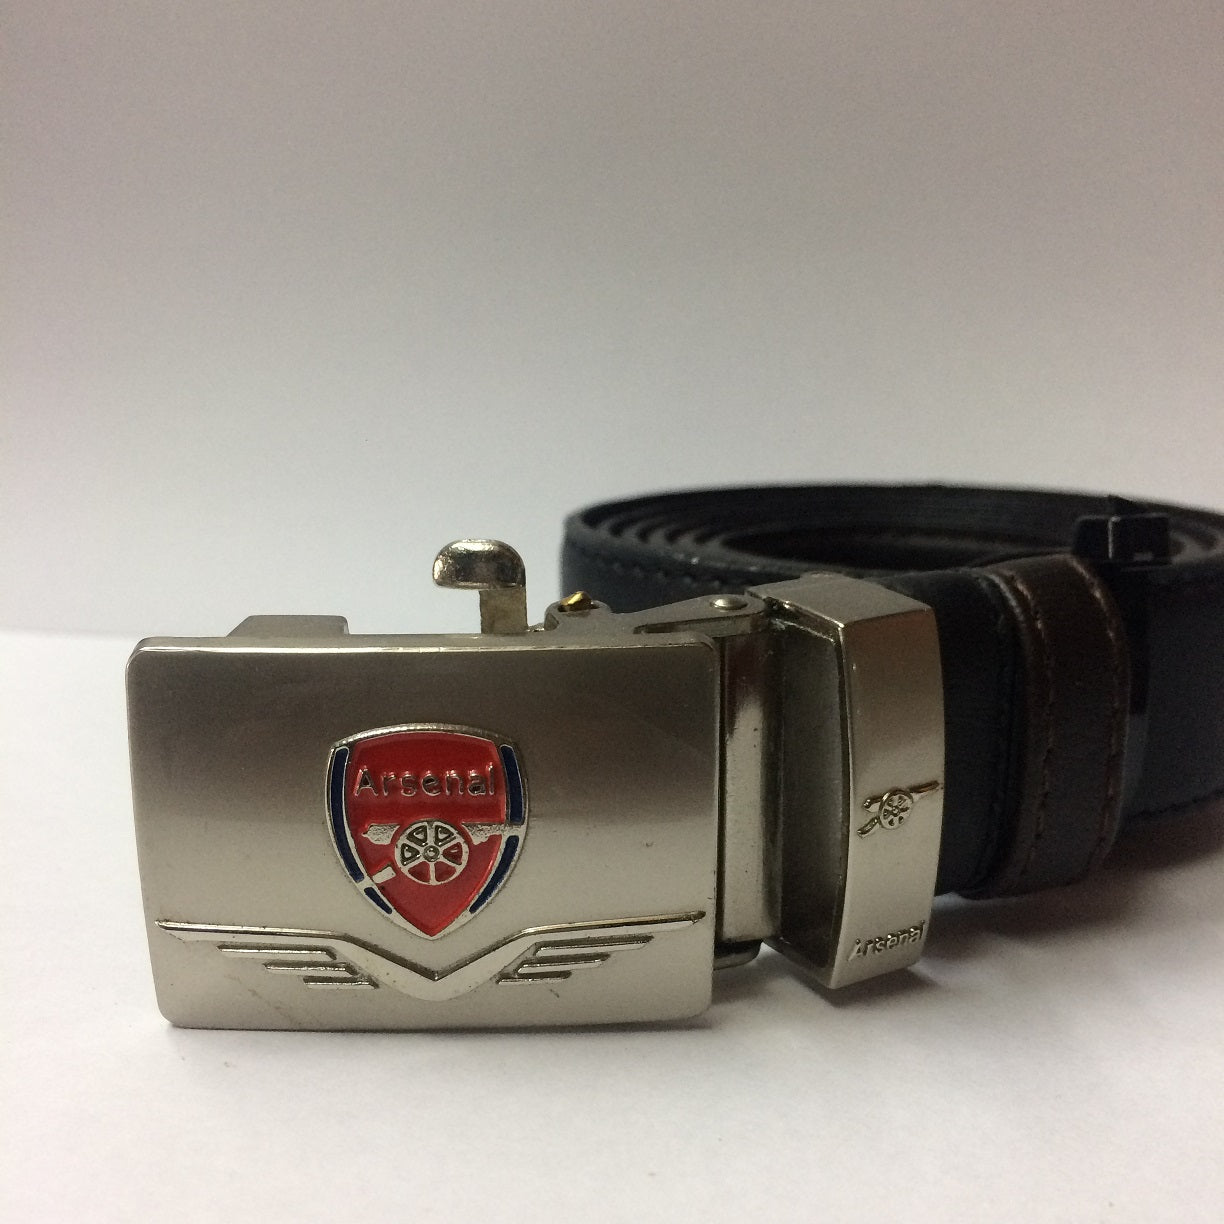 Arsenal Men's Dress Belt